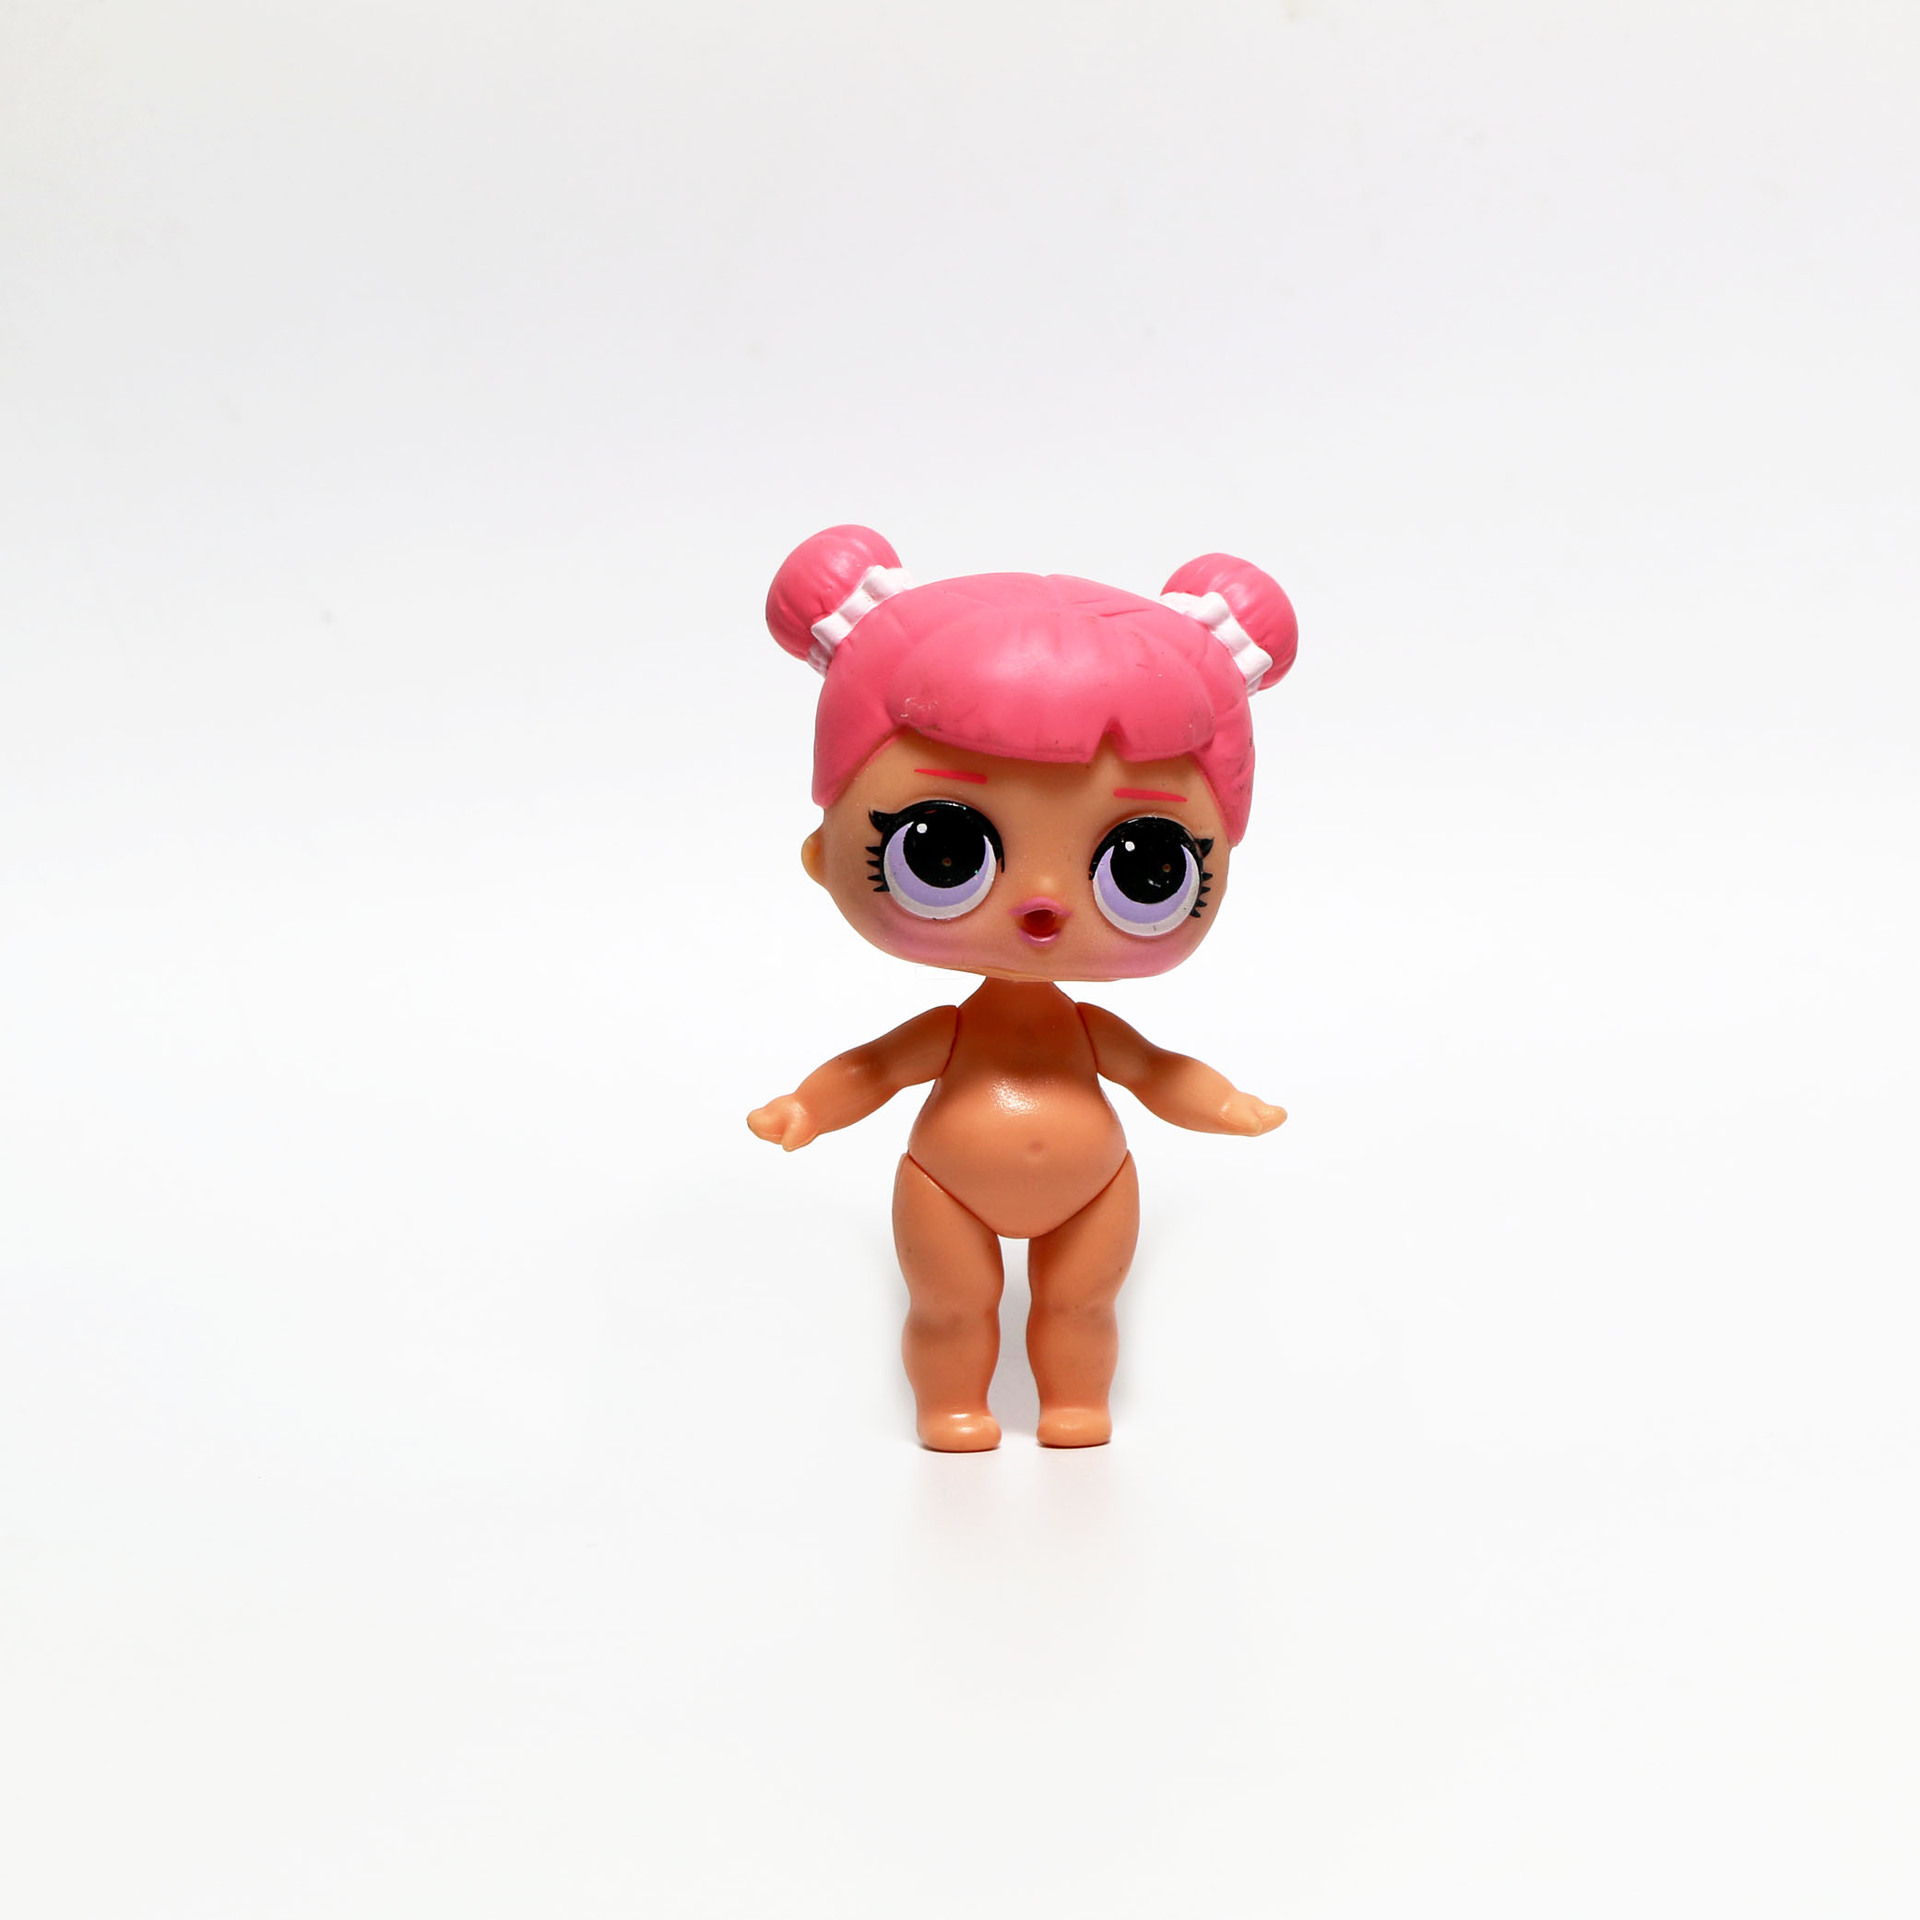 1pcs set Hot Sale High Quality LOLS Dolls Toy Baby Unpacking Dolls Action Figure Kids Gift Toy For Girls Random Sent in Action Toy Figures from Toys Hobbies